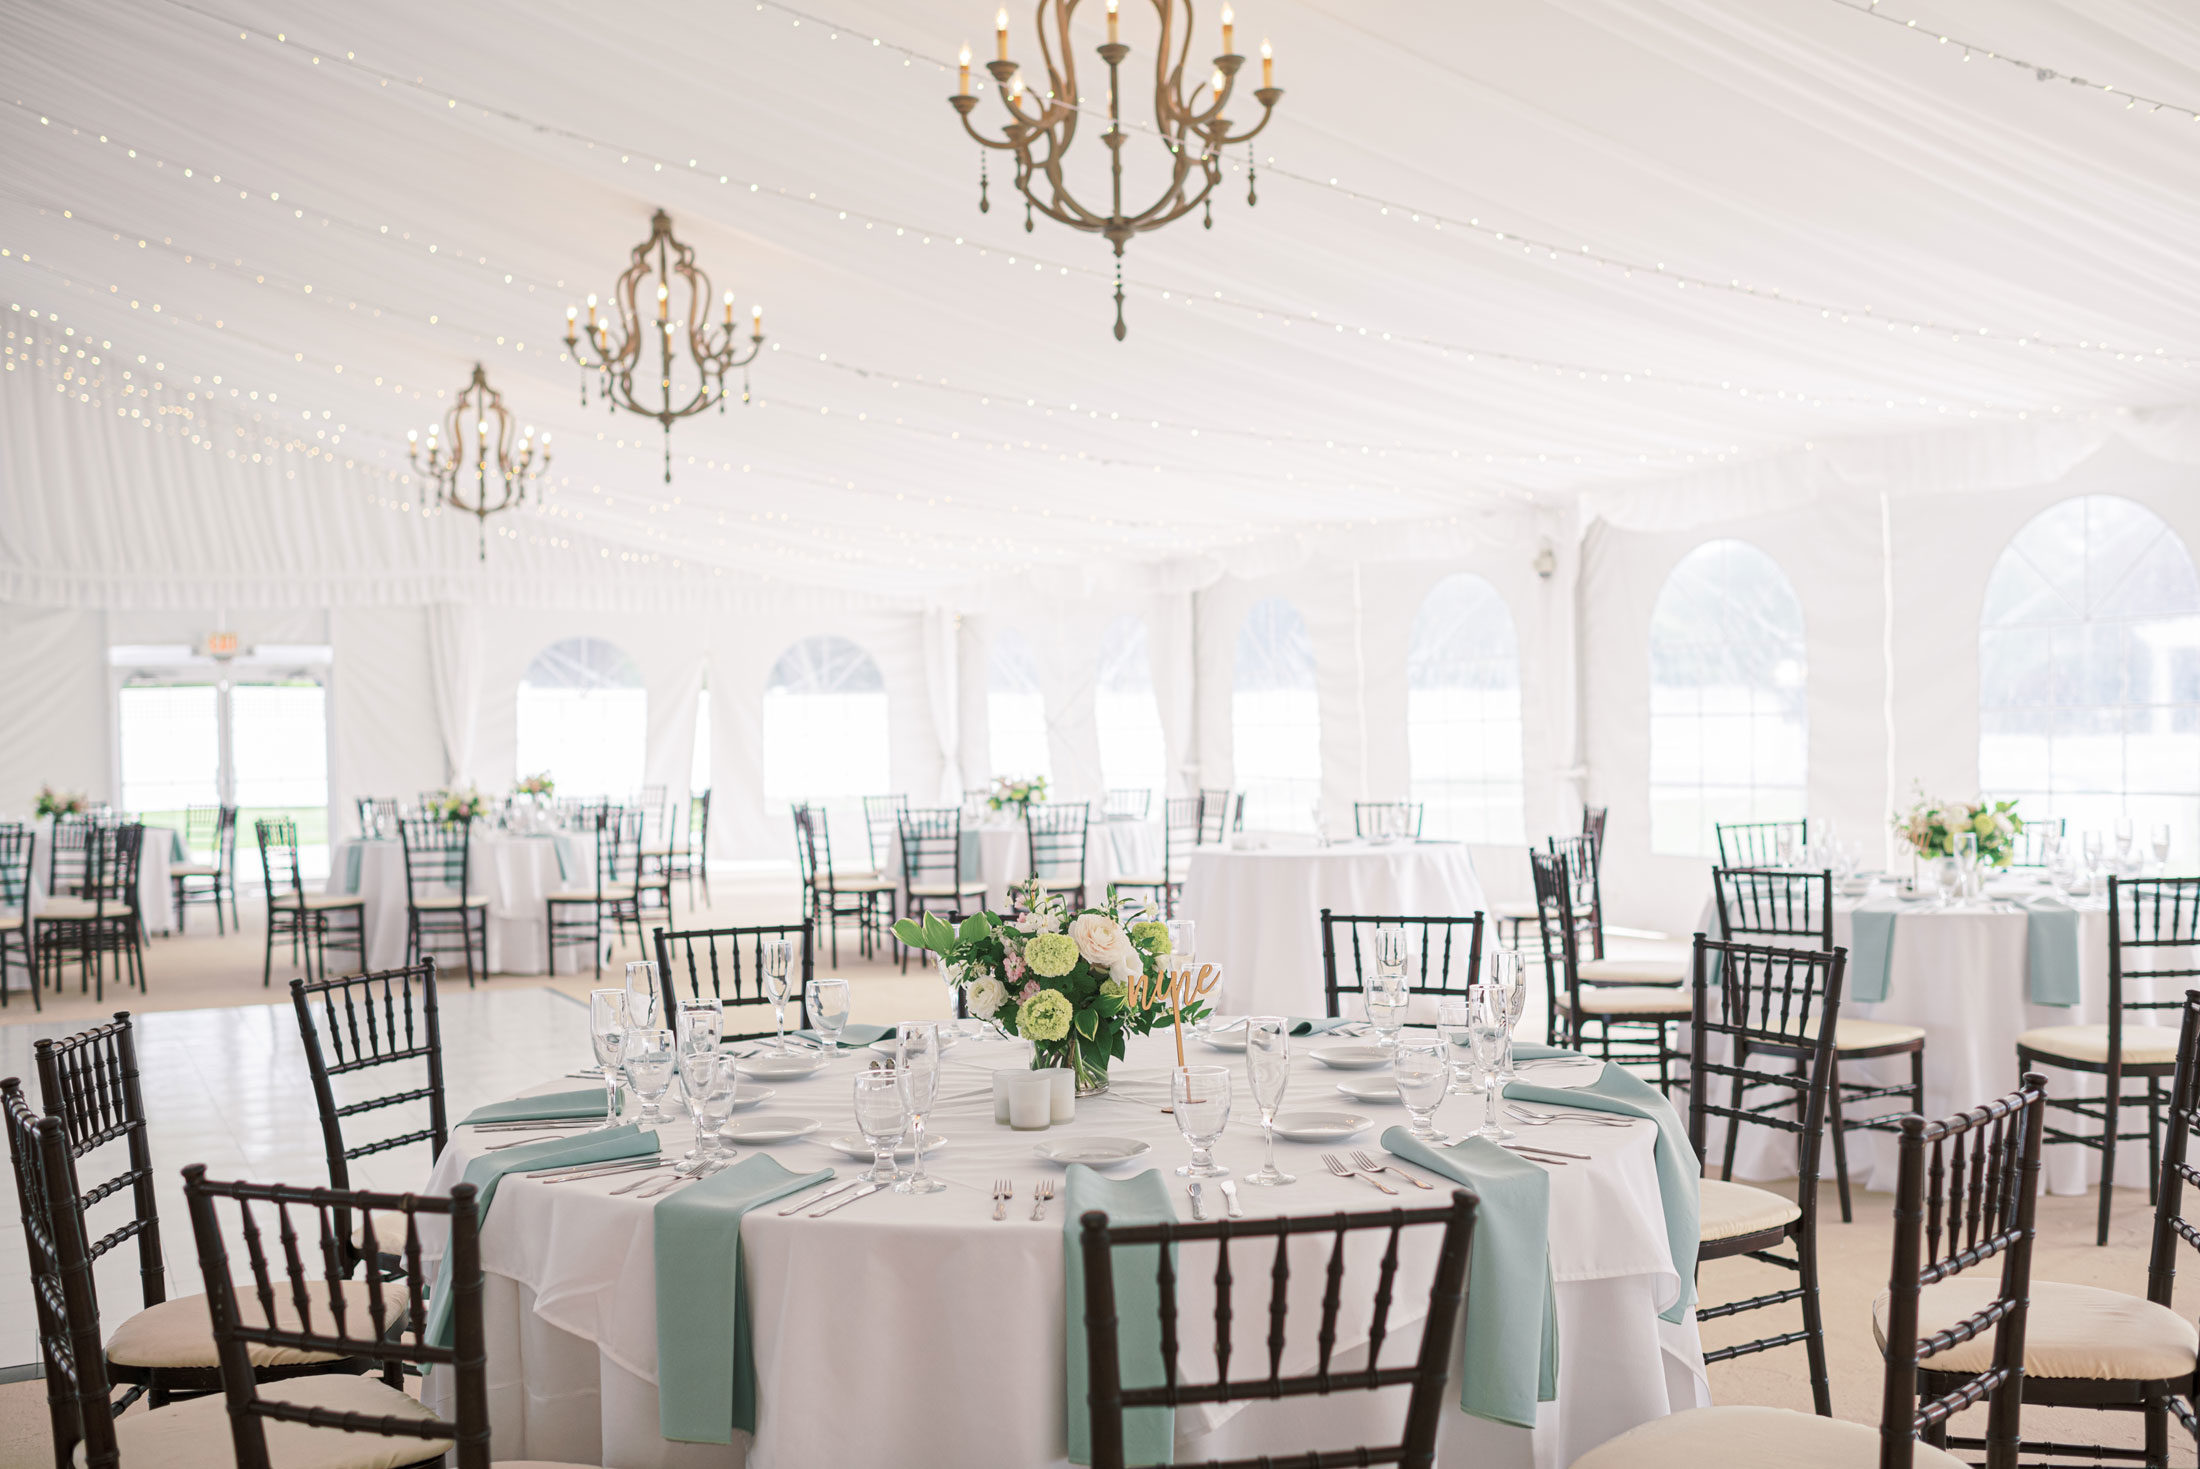 Photography | Tented wedding at The Villa wedding venue in East Bridgewater MA